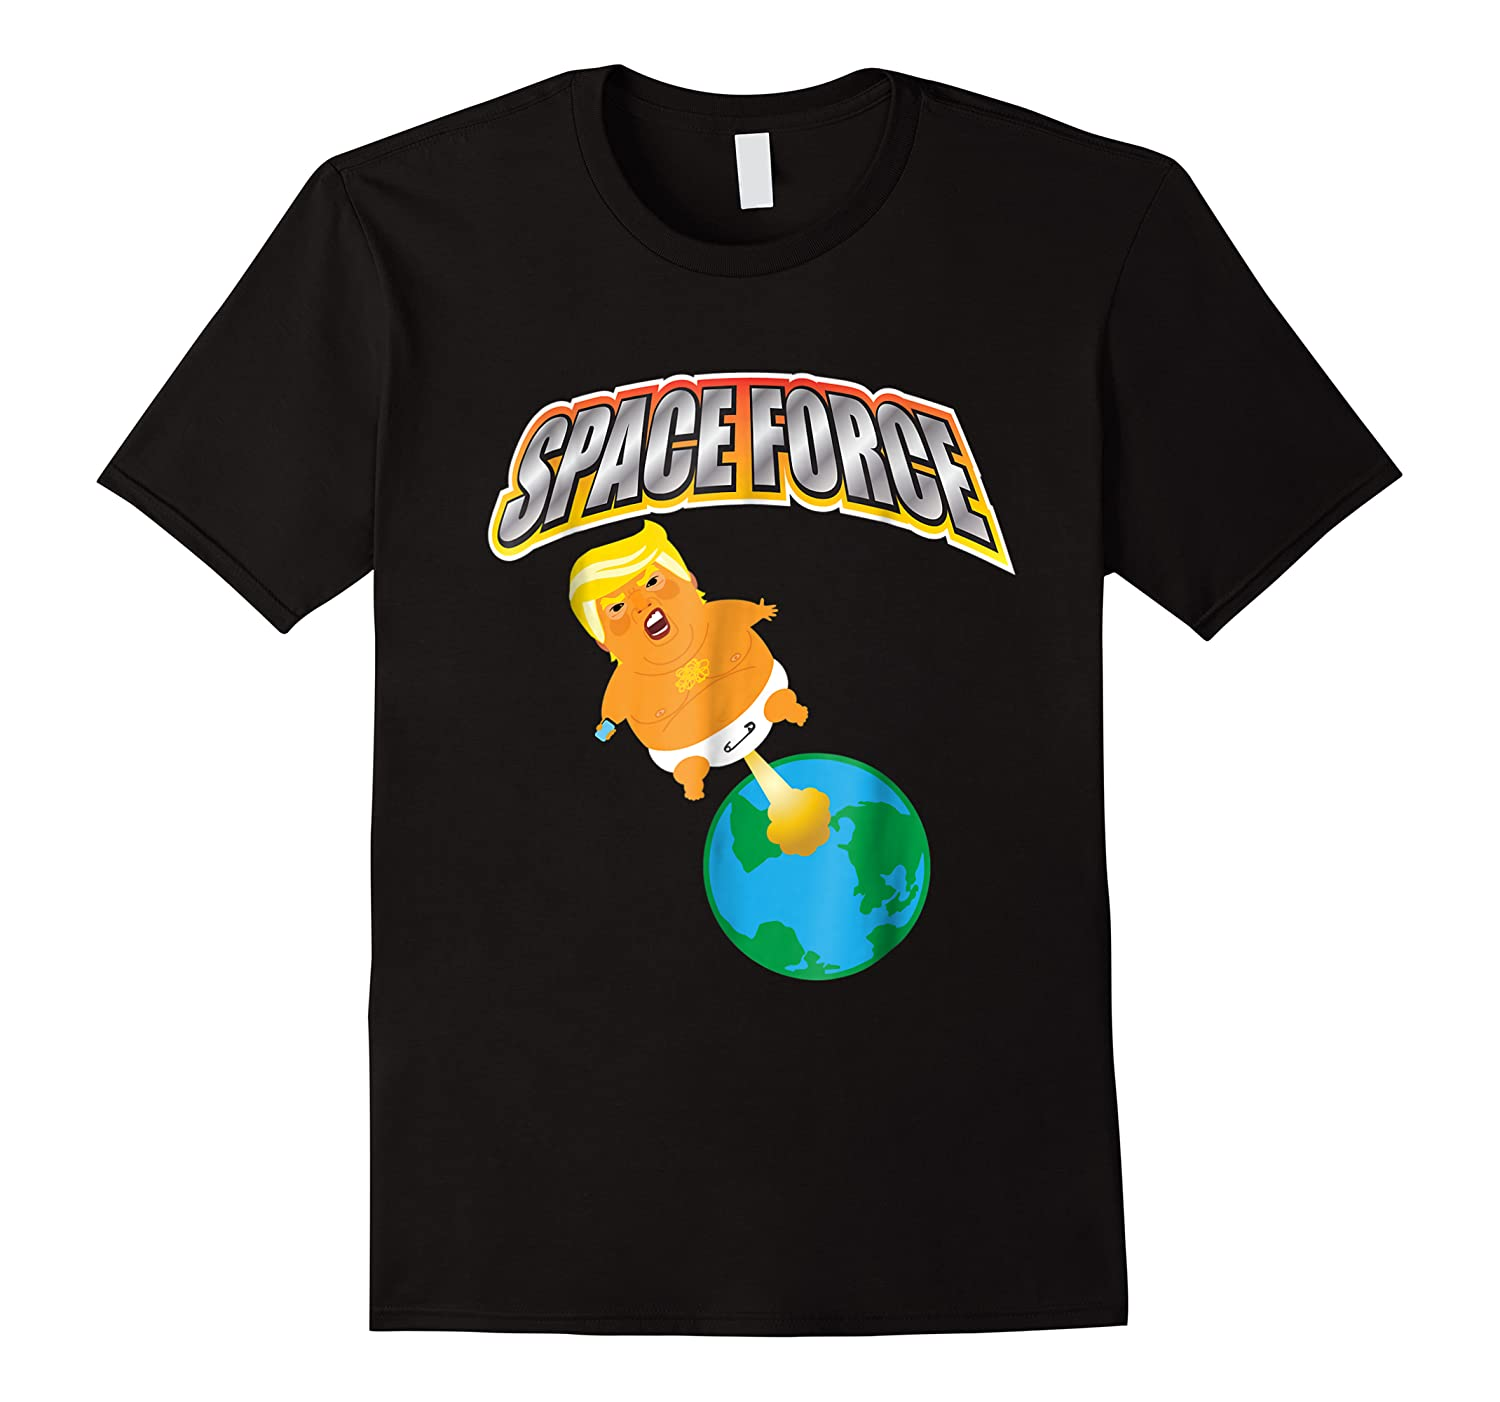 Anti Space Force Funny Donald Trump Gift Shirts